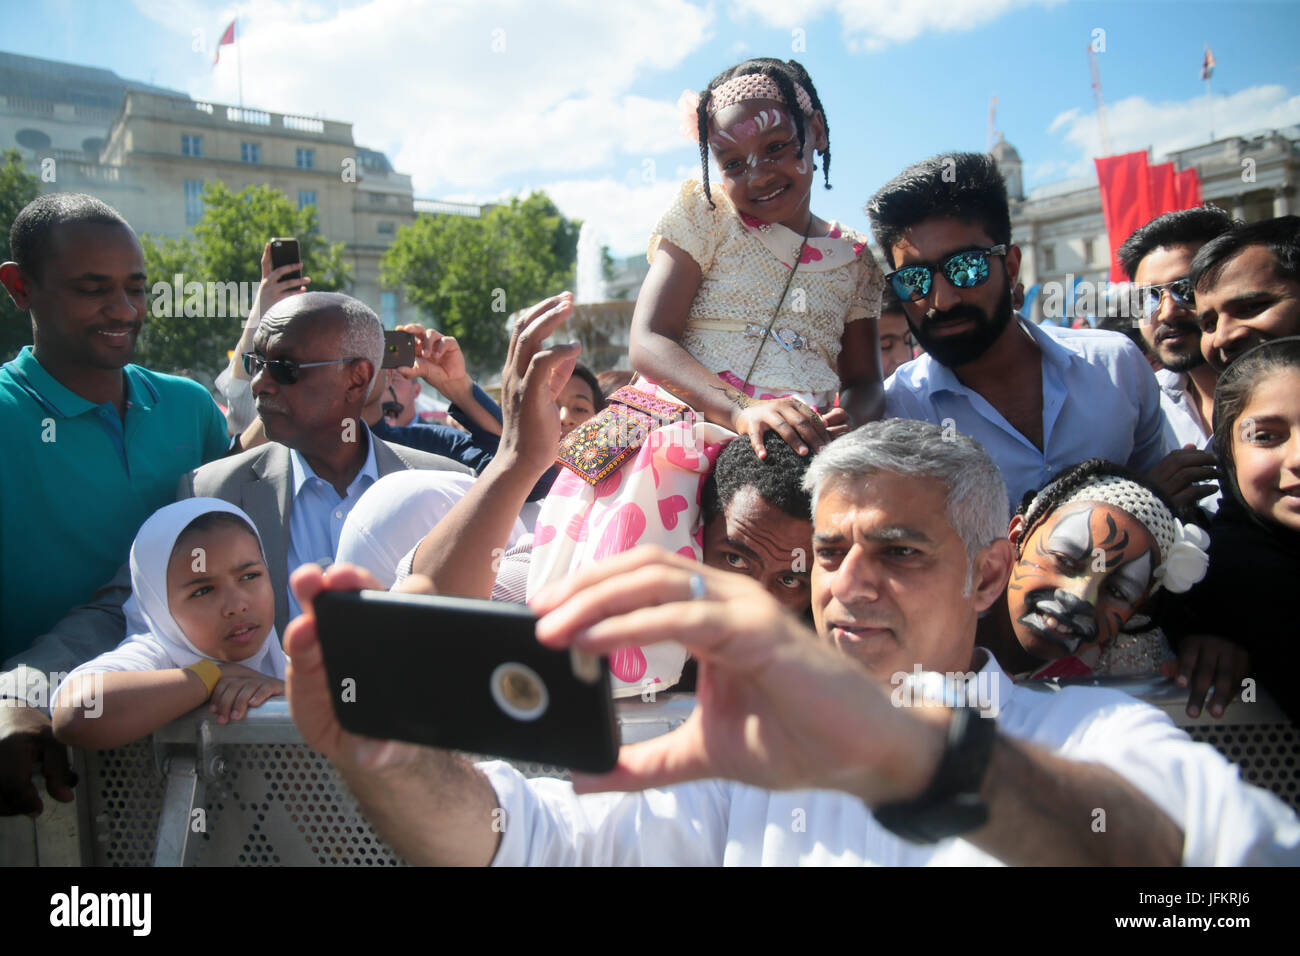 London, UK. 2nd July, 2017. Eid celebrations saw the London Mayor Sadiq Khan meeting some of the large crowd who - Stock Image